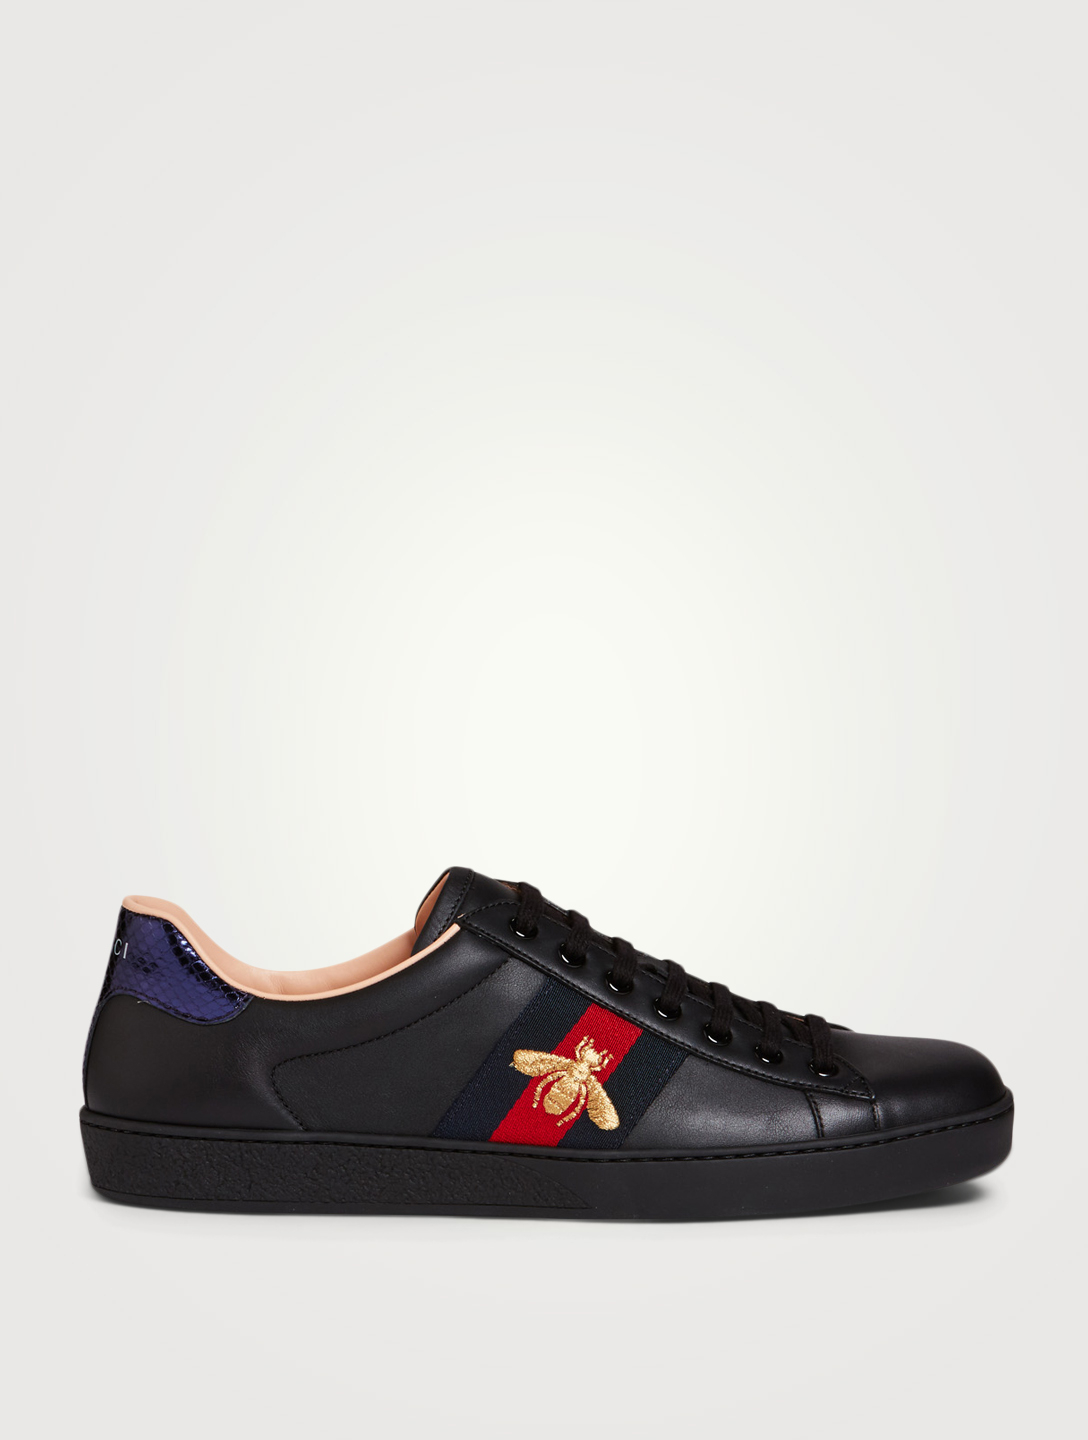 276e5df6346ff GUCCI New Ace Embroidered Leather Sneakers Men s Black ...